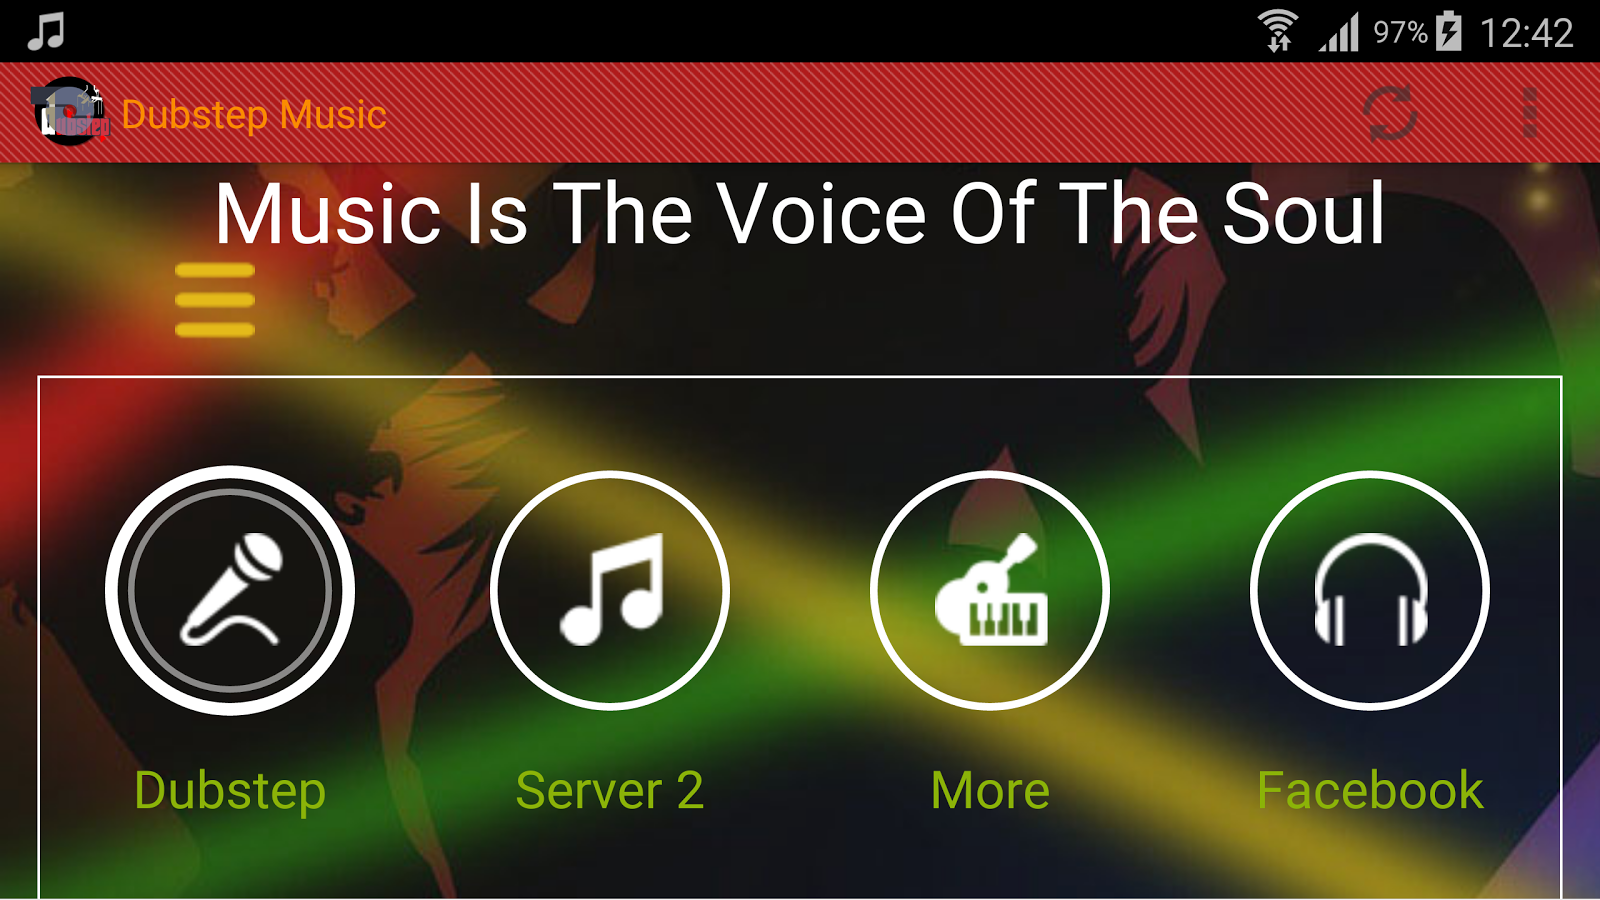 Details moreover Radio Chile The Best Am Fm Radio Stations In Chile additionally Nokia Lumia 920  Tiles In Size XL furthermore Google Earth Pro Fuer Alle in addition Streaming Service Mixradio  es To Google Play 609602. on offline radio is an application that can listen to